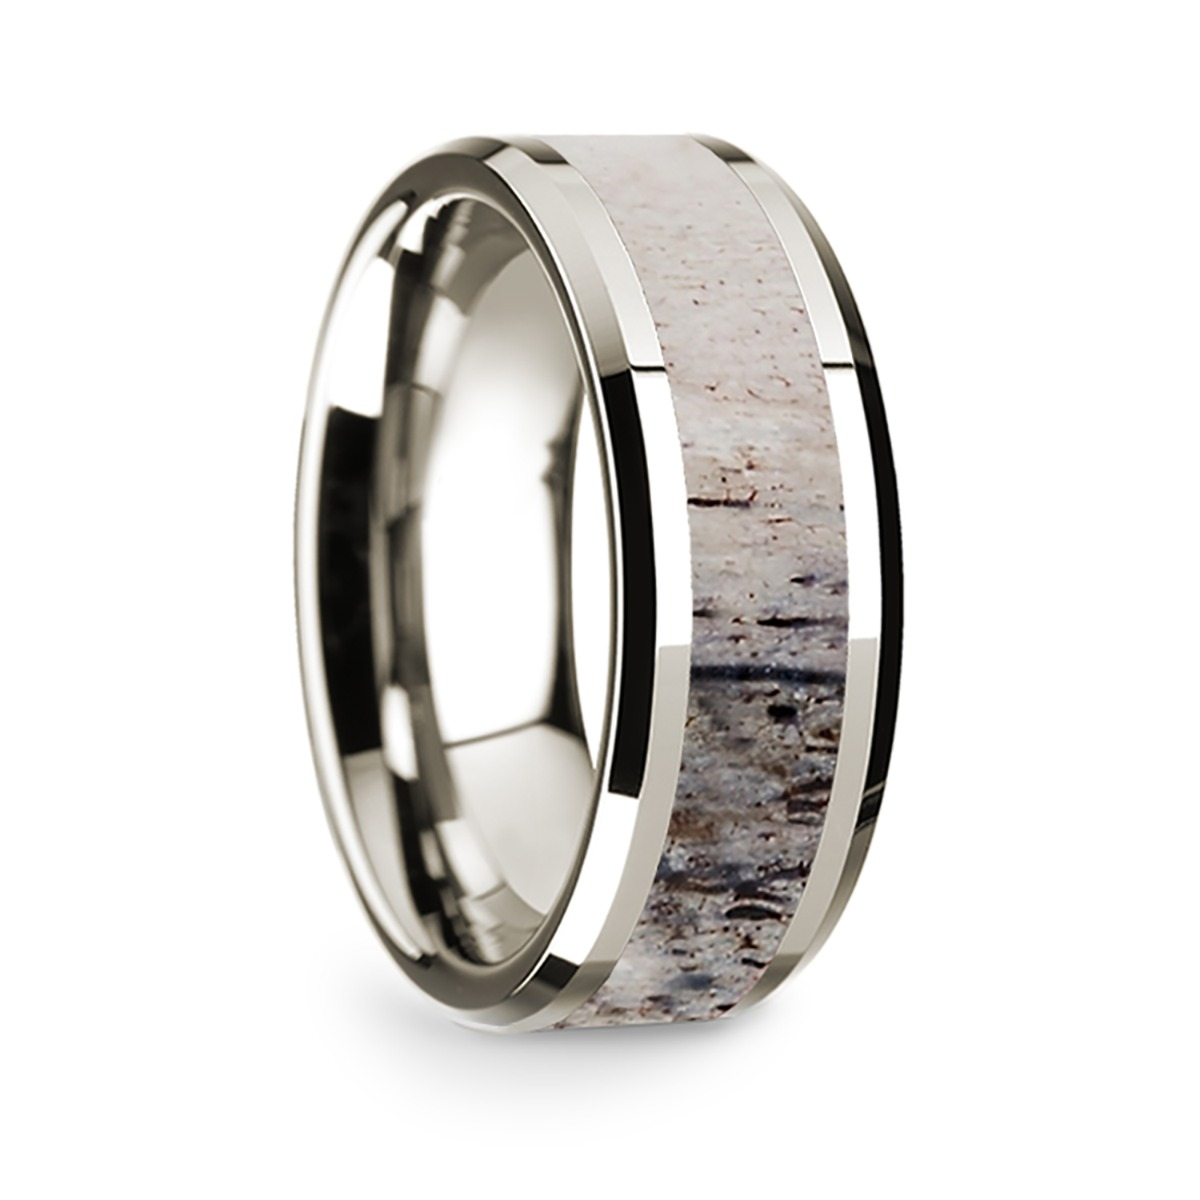 14k White Gold Polished Beveled Edges Wedding Ring with Ombre Deer Antler Inlay - 8 mm